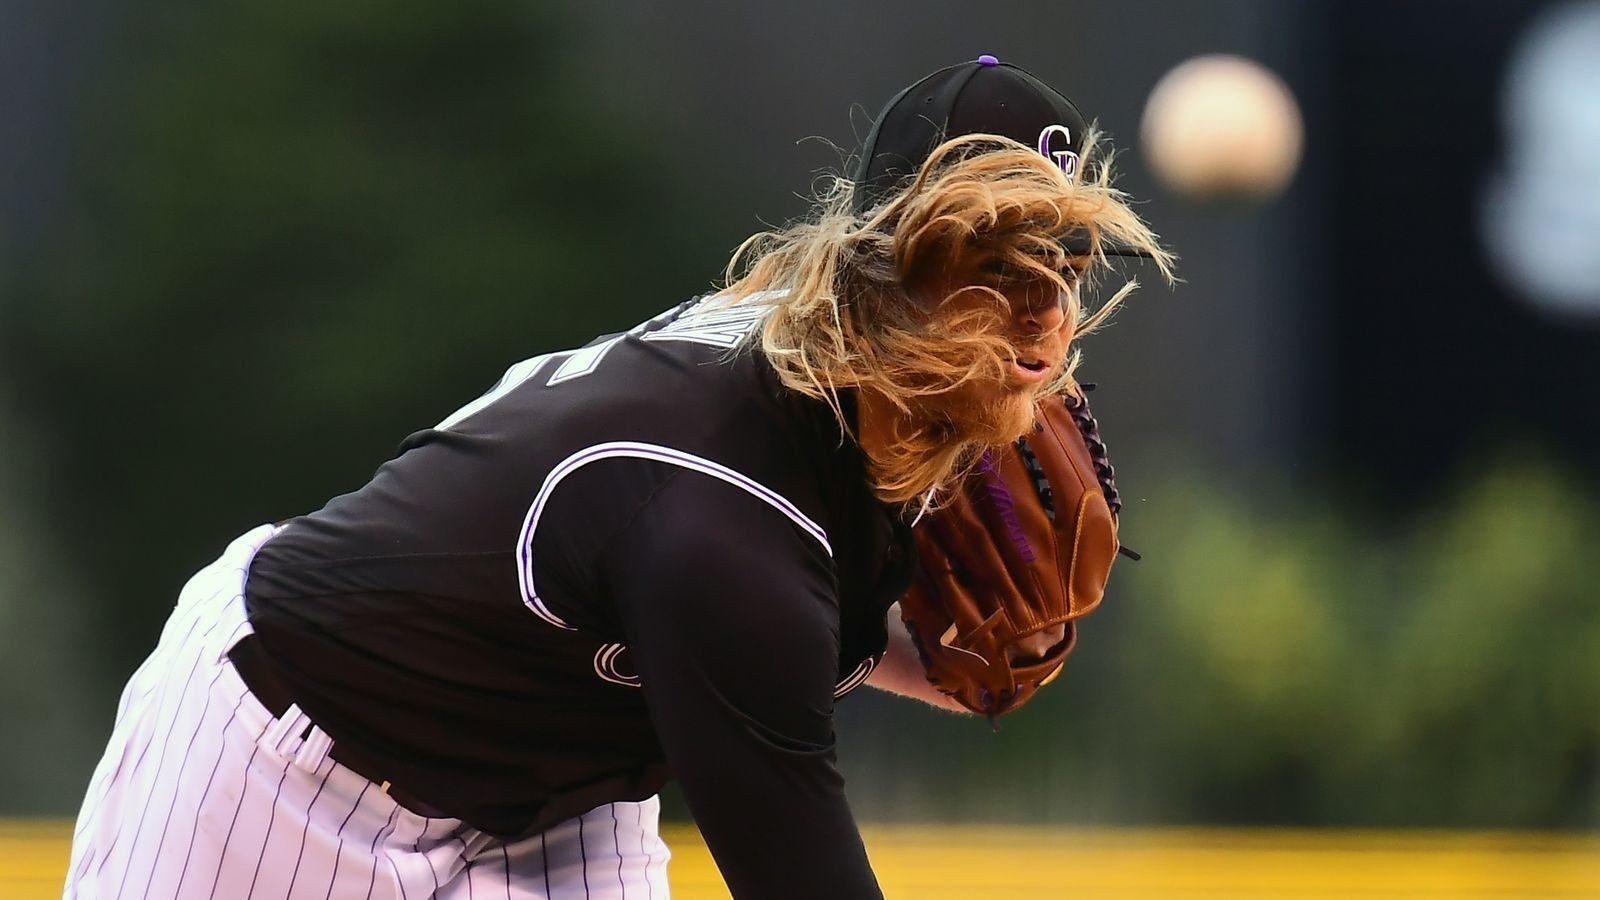 Rockies Draft 2013 review: How have the Rockies drafted in the past?